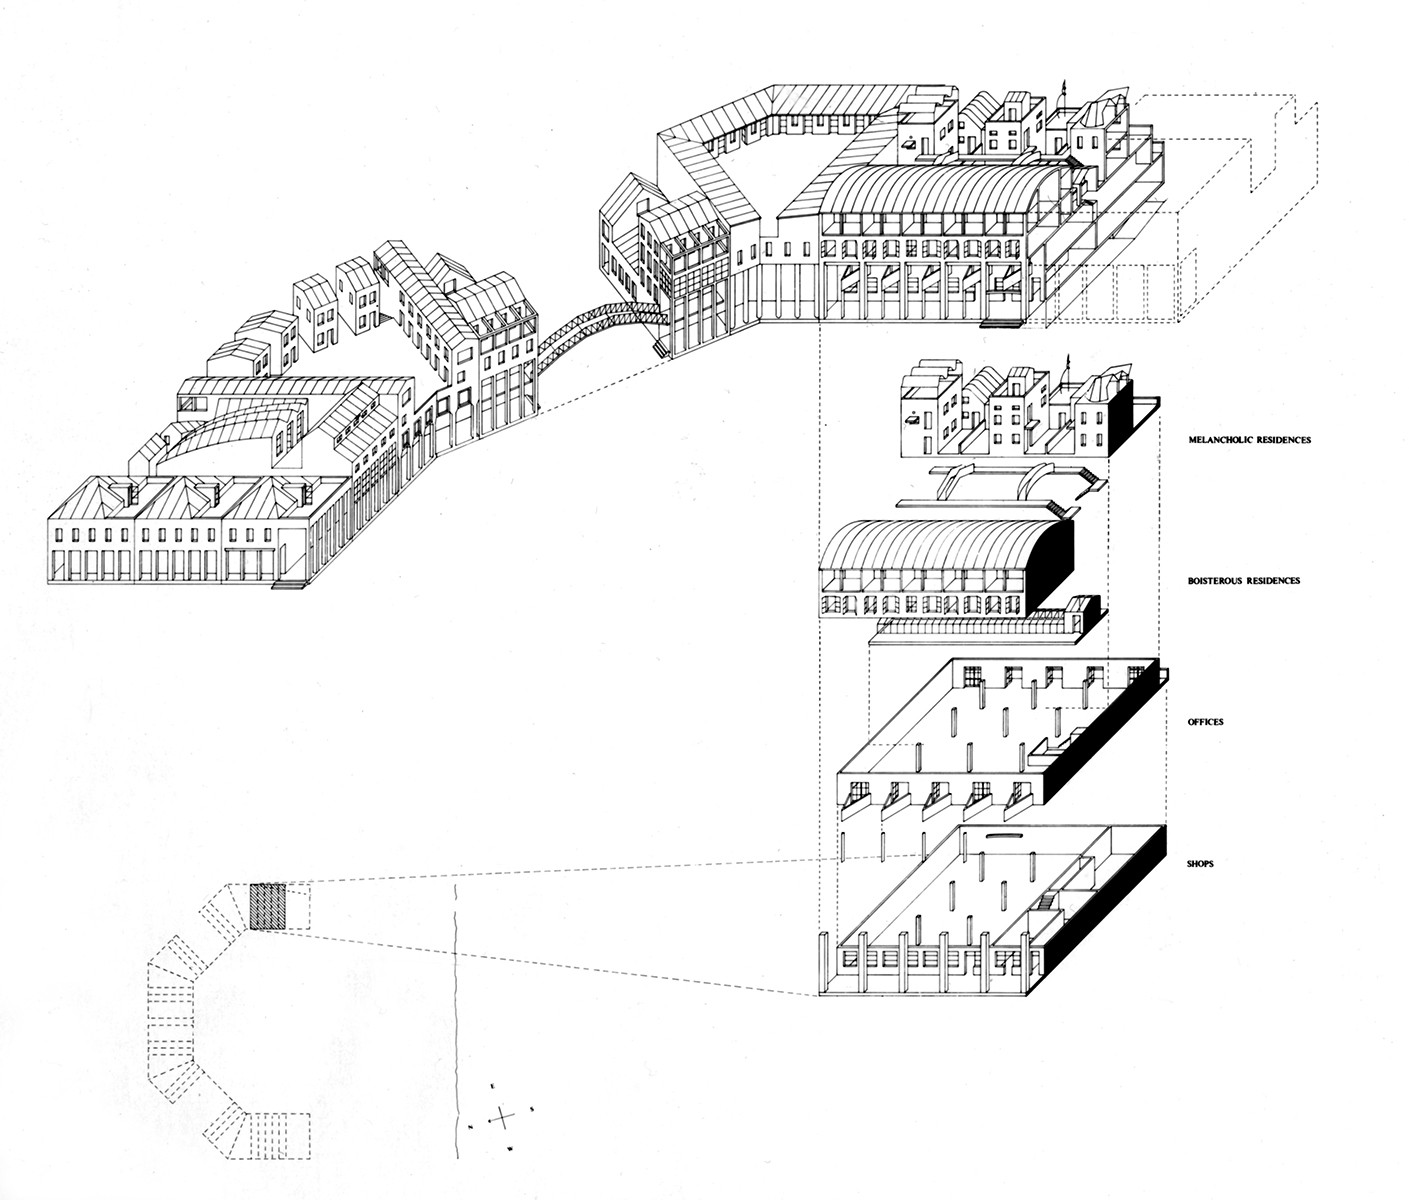 https://stevenholl.sfo2.digitaloceanspaces.com/uploads/projects/project-images/StevenHollArchitects_Hybrid_axo2_WCV.jpg